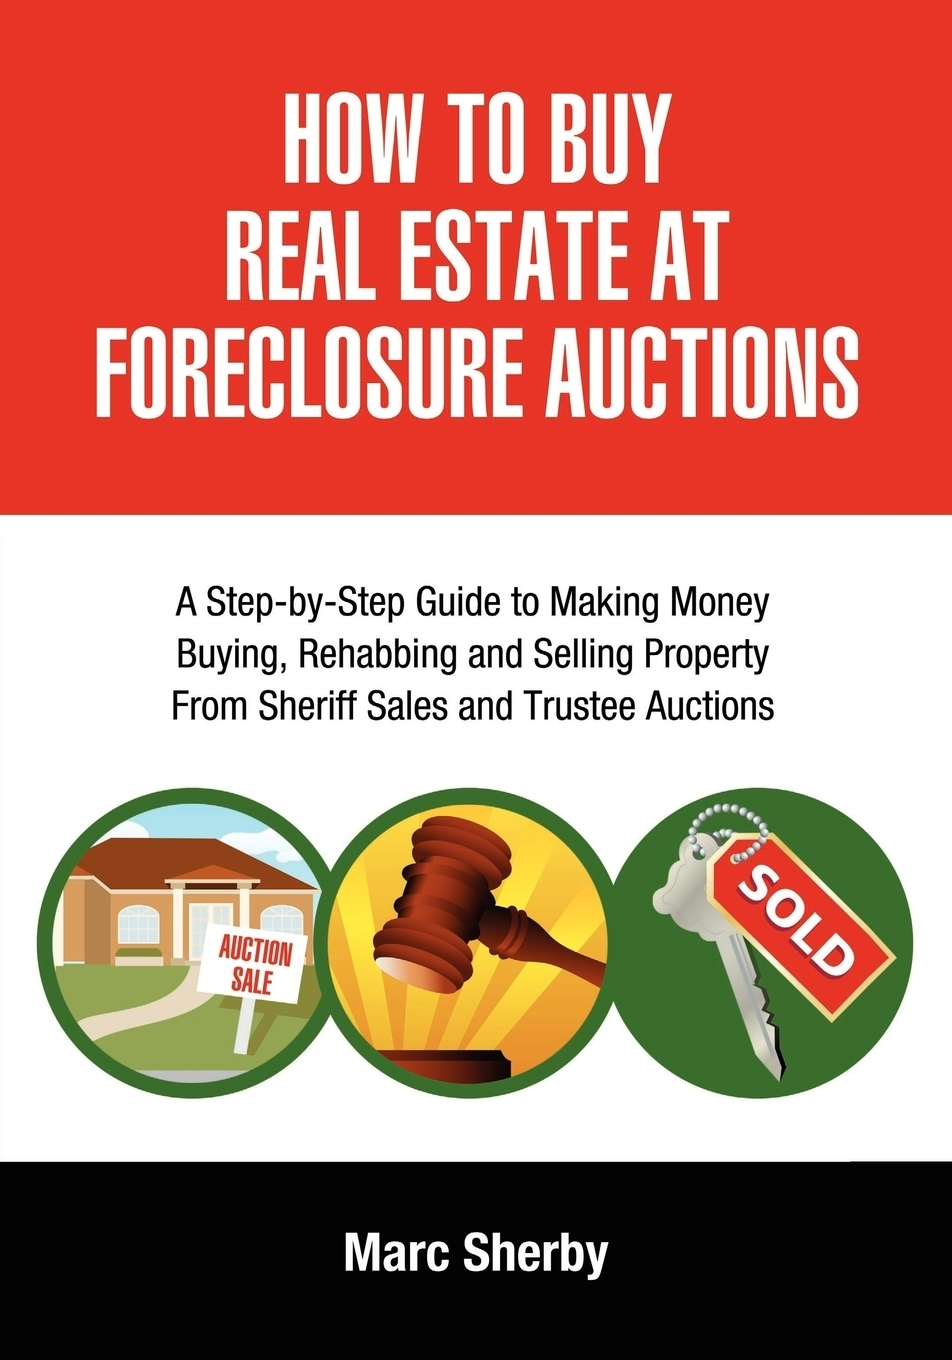 Marc Sherby How to Buy Real Estate at Foreclosure Auctions. A Step-By-Step Guide to Making Money Buying, Rehabbing and Selling Property from Sheriff Sales and Tru bill carey the all new real estate foreclosure short selling underwater property auction positive cash flow book your ultimate guide to making money in a crashing market